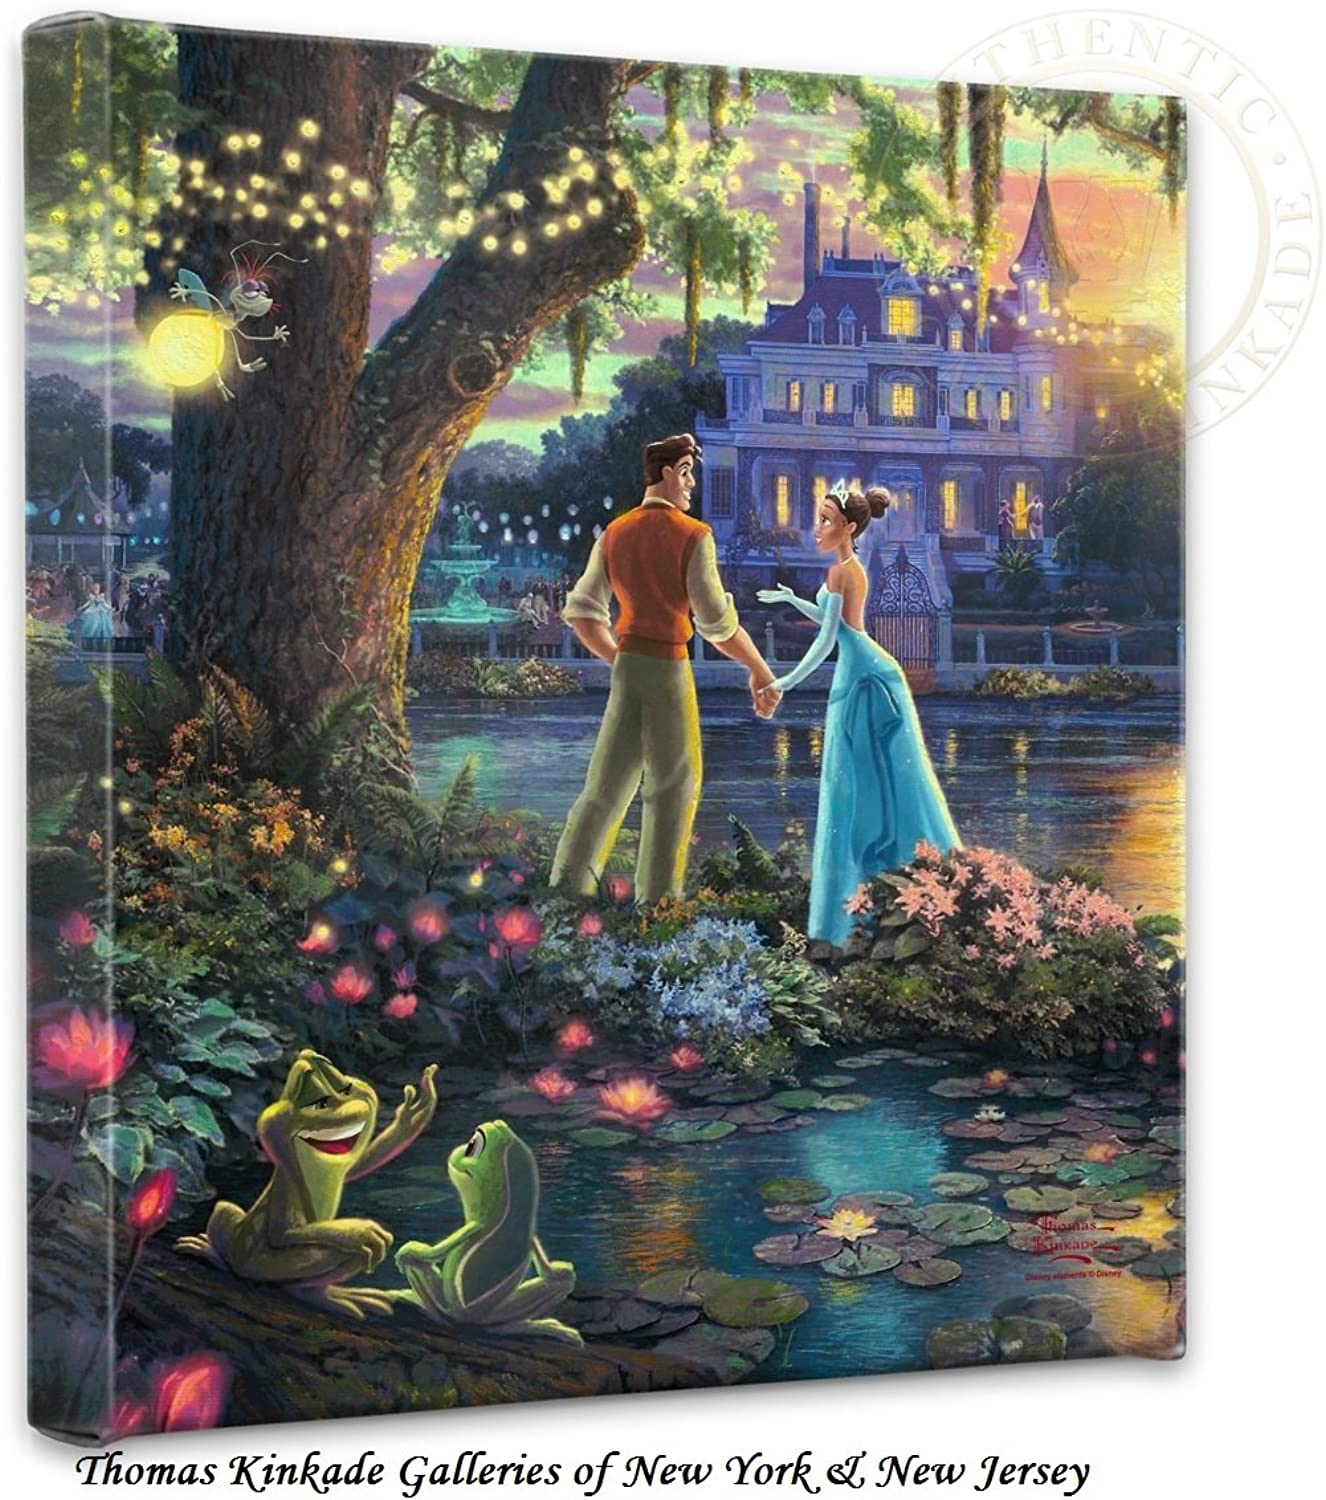 Thomas Kinkade Princess & the Frog 14 x14 x1.5  canvas wrap